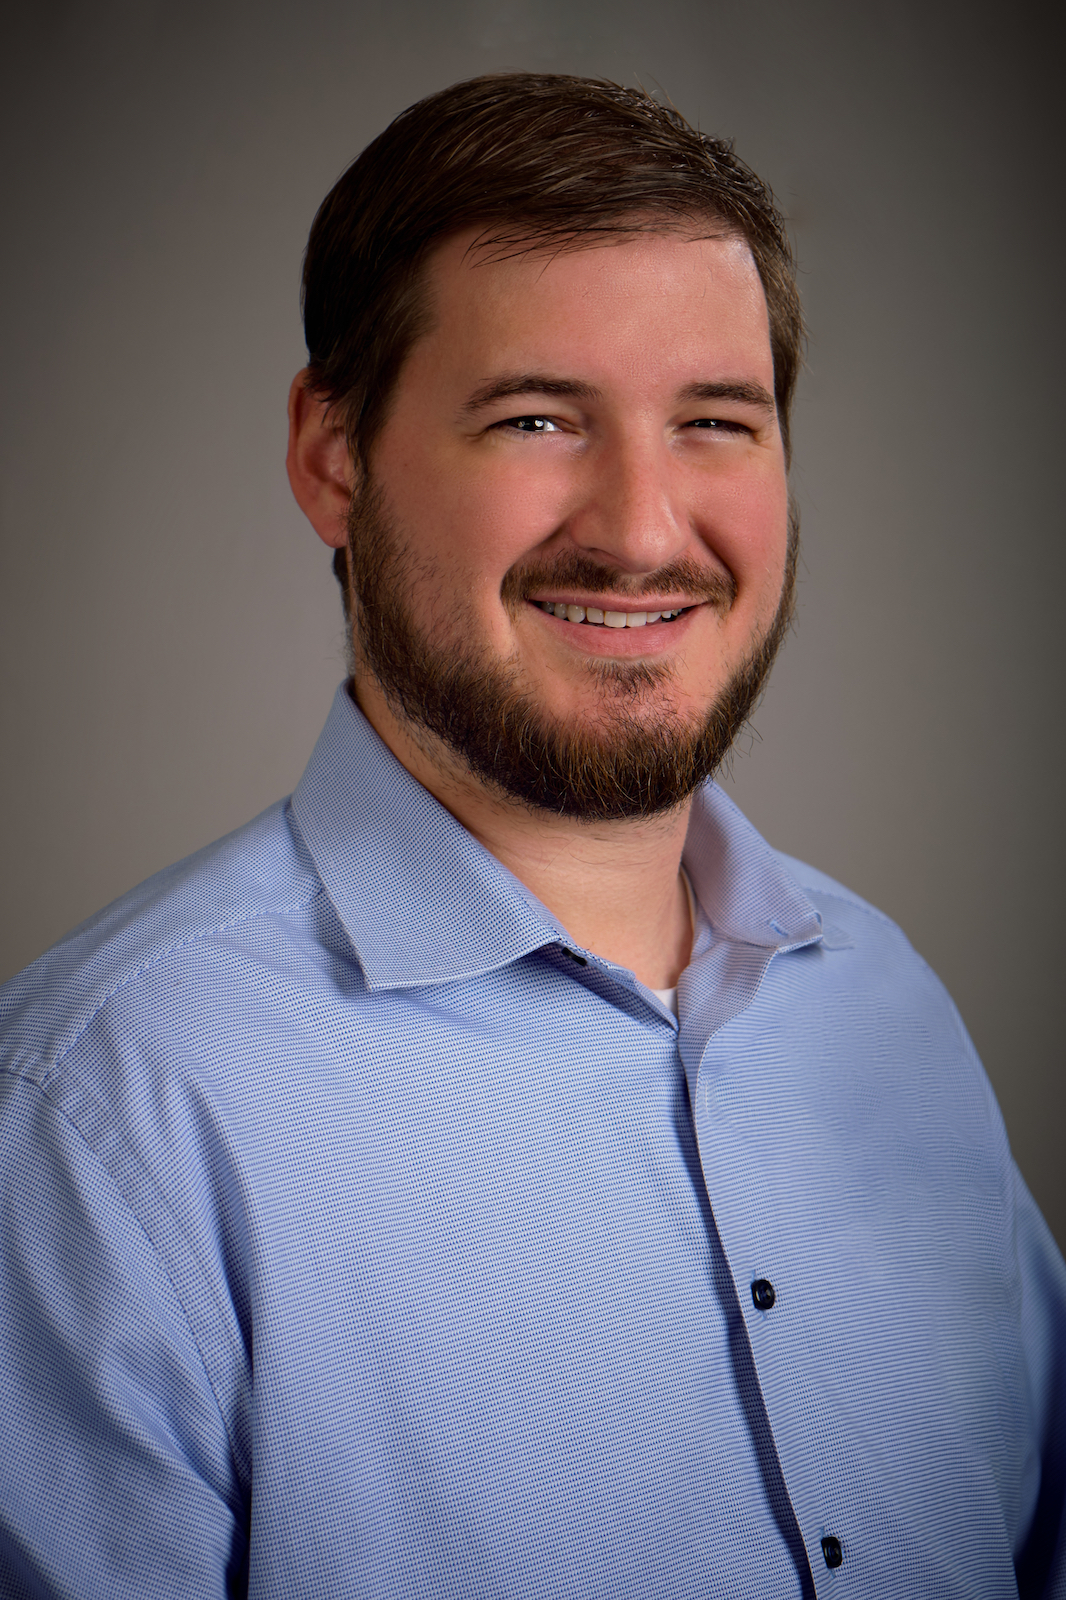 corporate head shot photography in knoxville tn